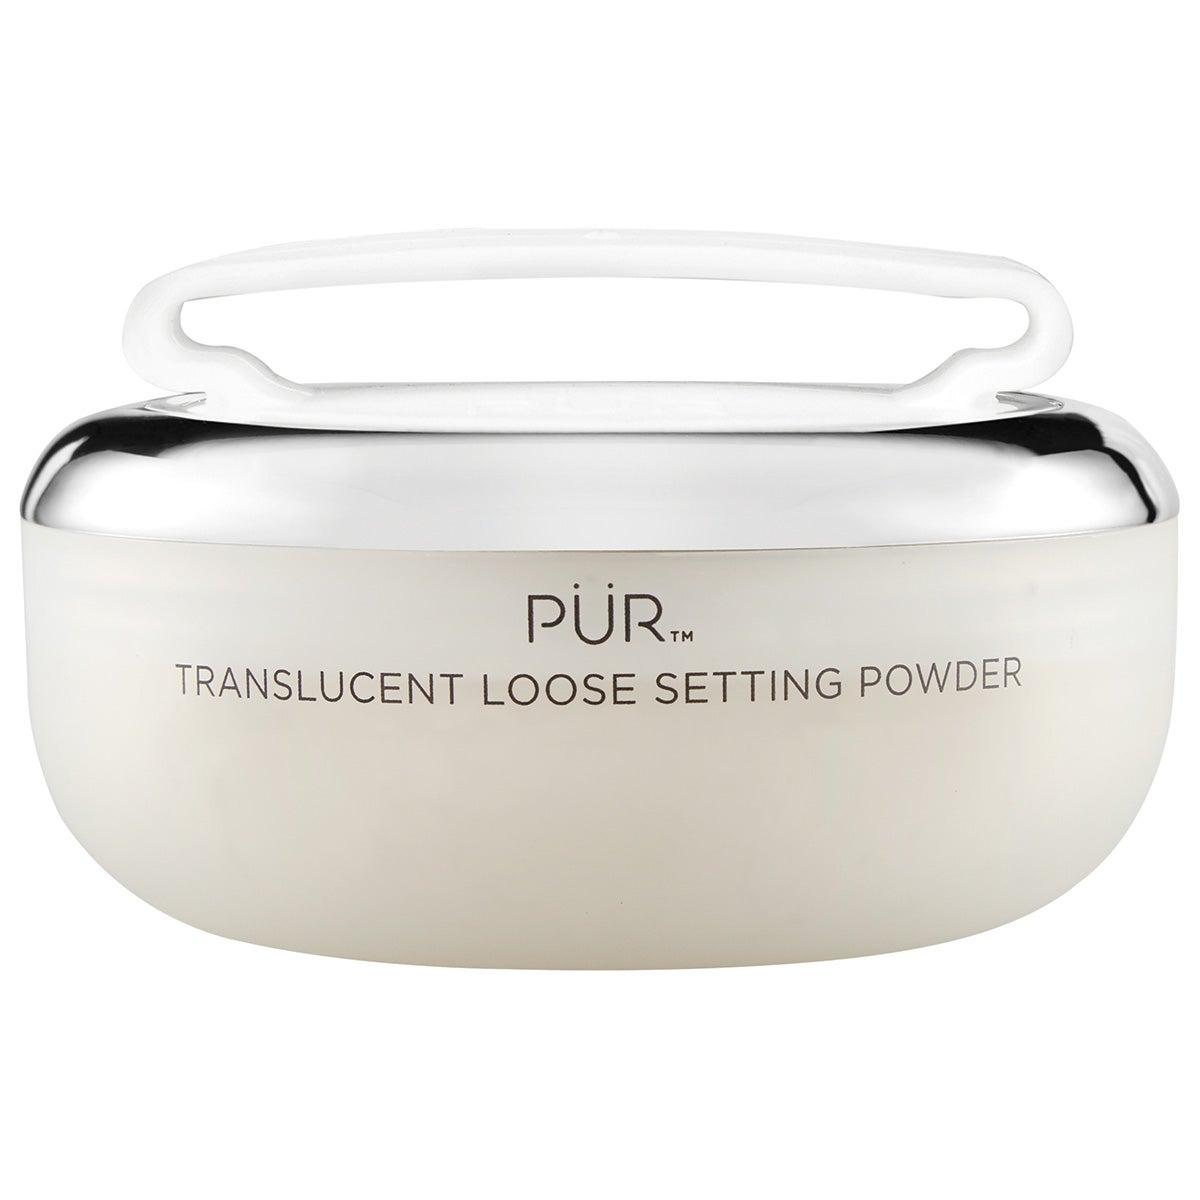 PÜR Pür Translucent Loose Powder